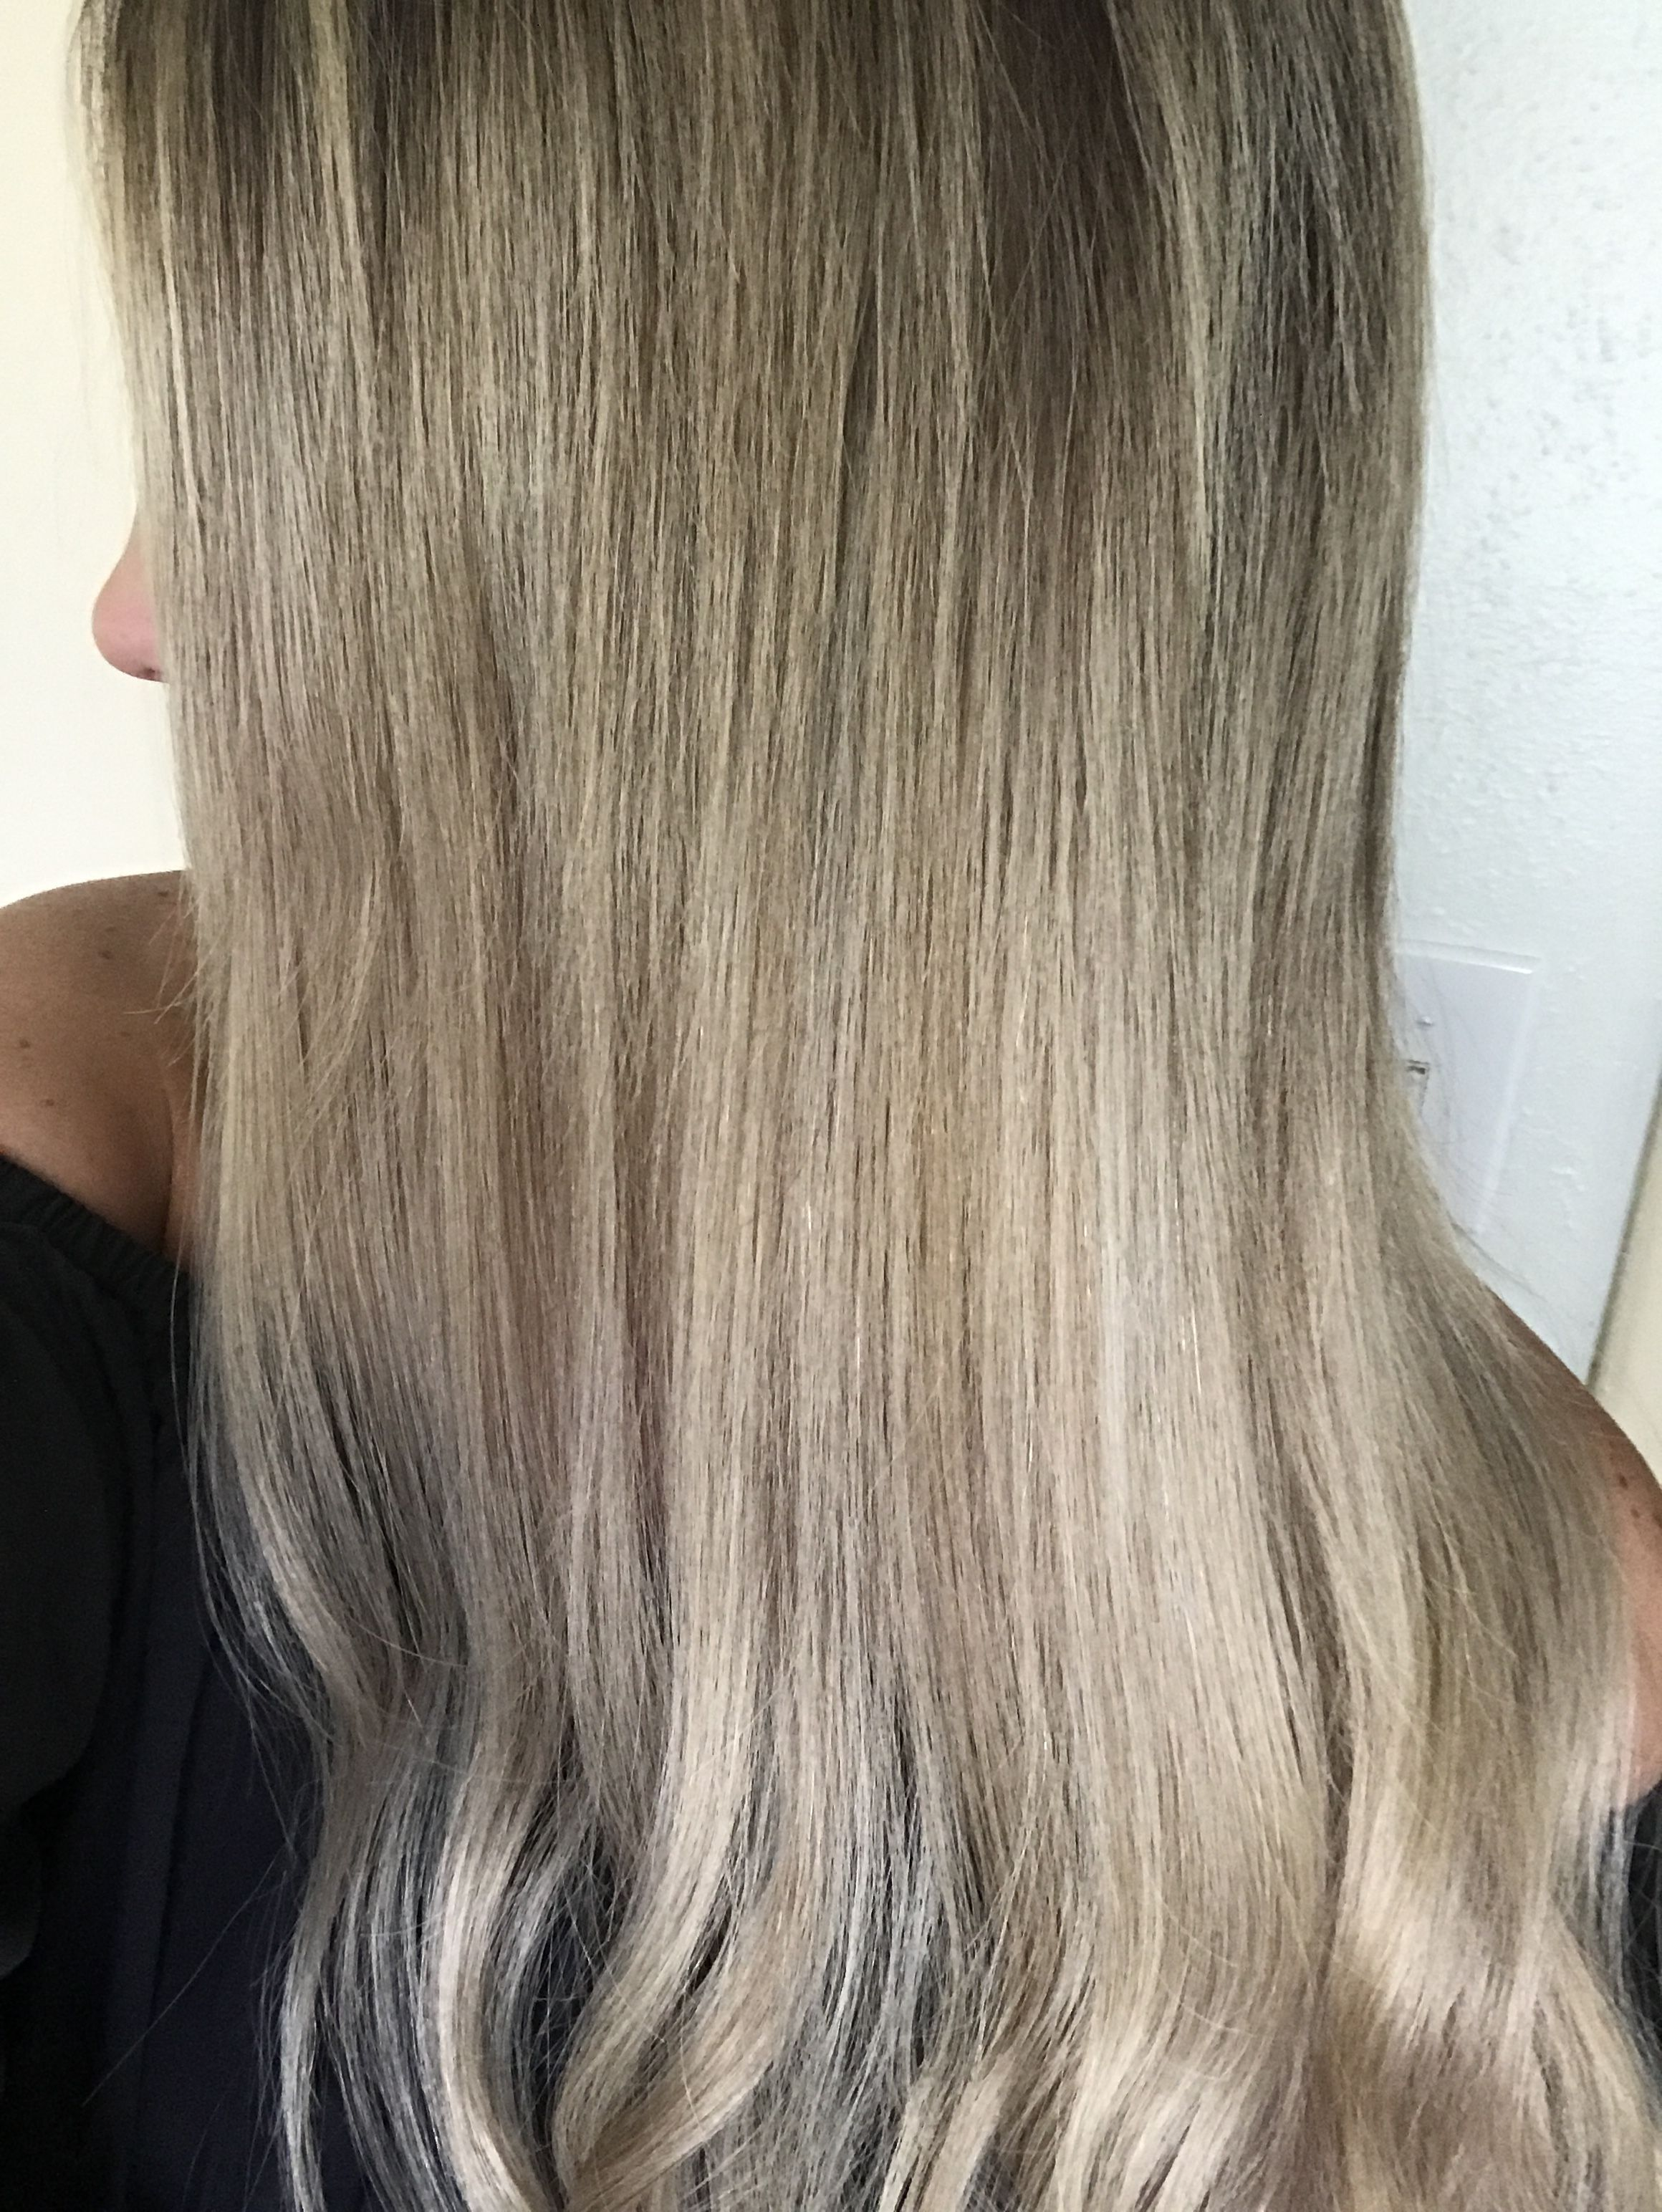 Ash Blonde Hair Laced Hair Extensions 1822 Washed With Purple